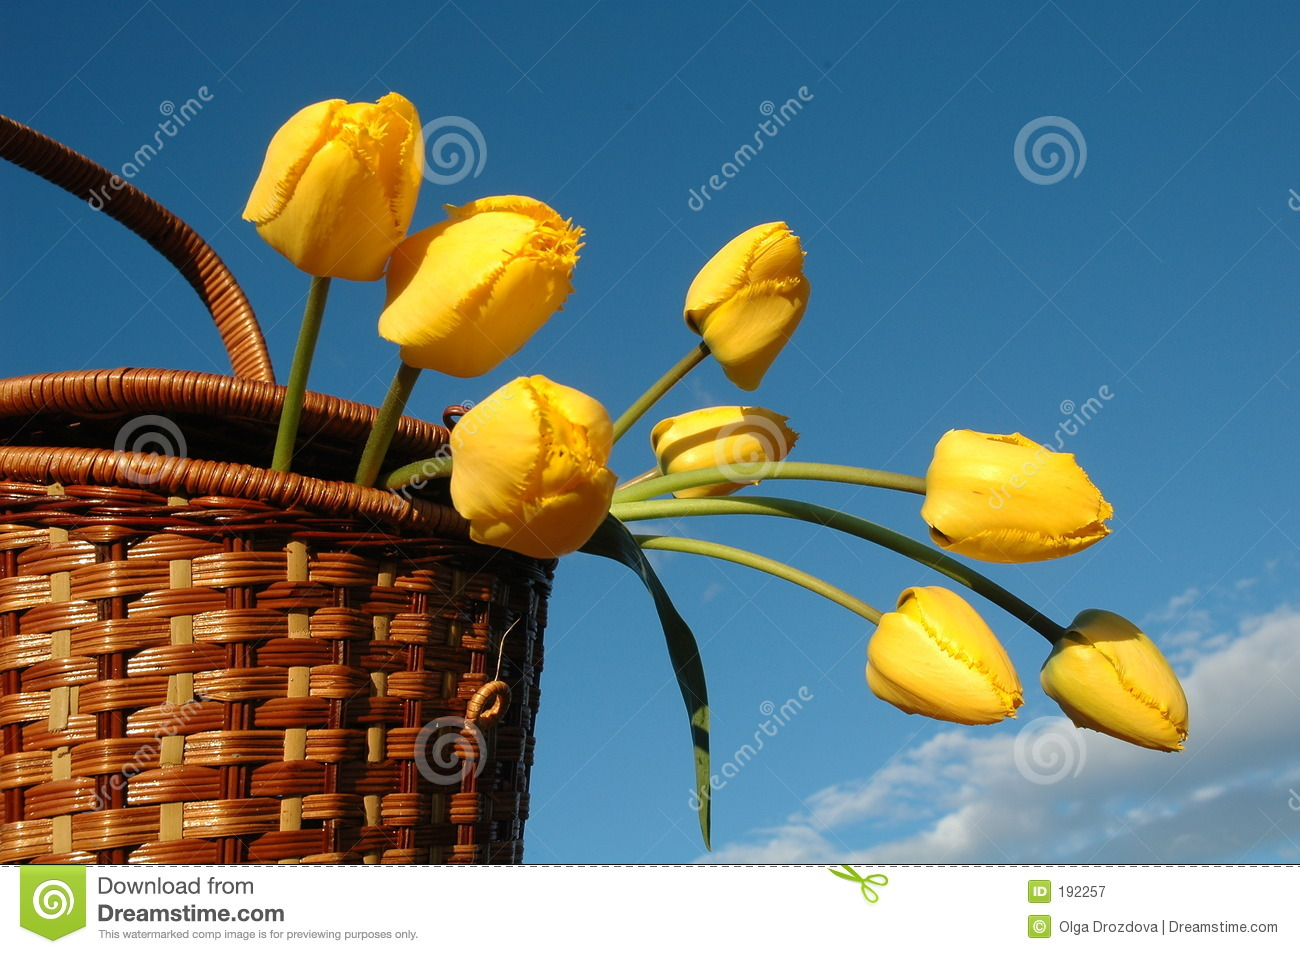 The basket with yellow tulips.